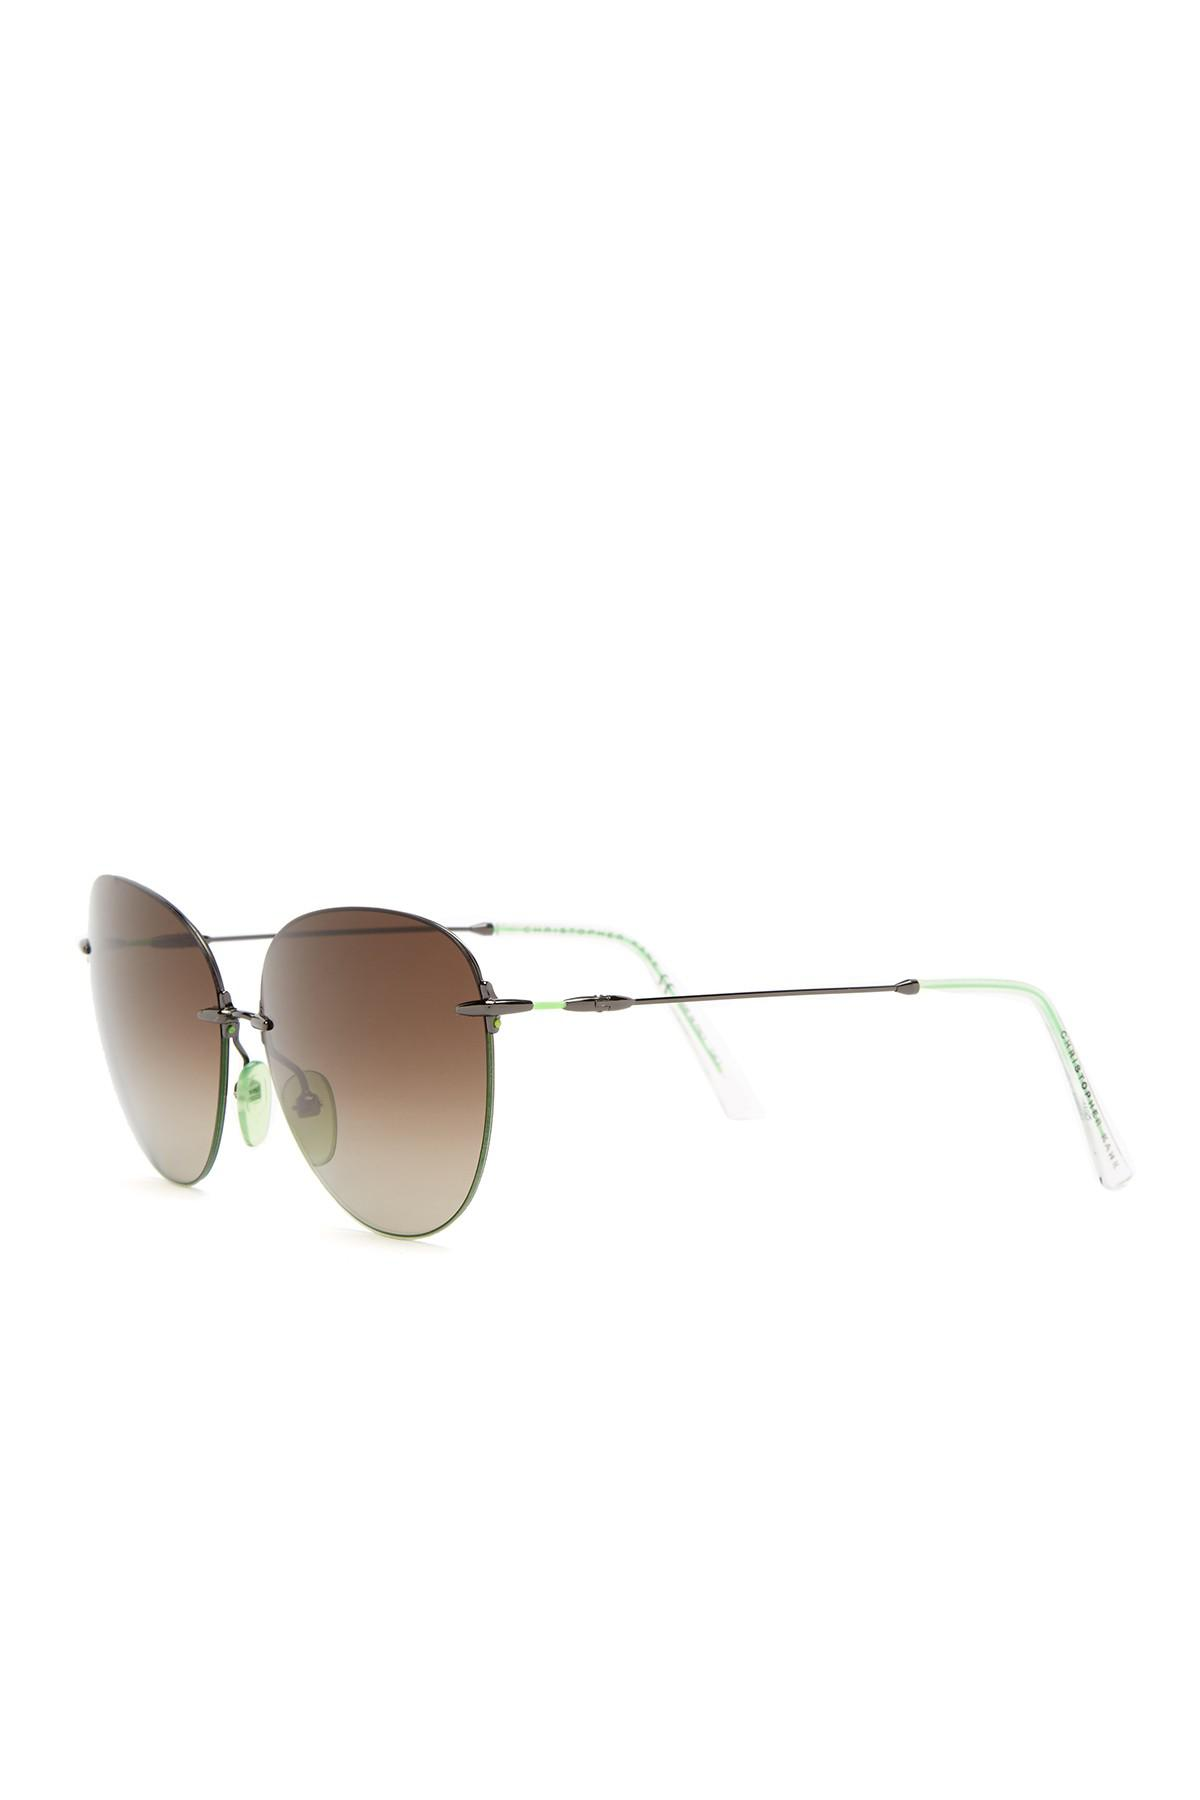 Sunglasses with Gradient Lenses in Gold Metal Christopher Kane XUGyXsnQL